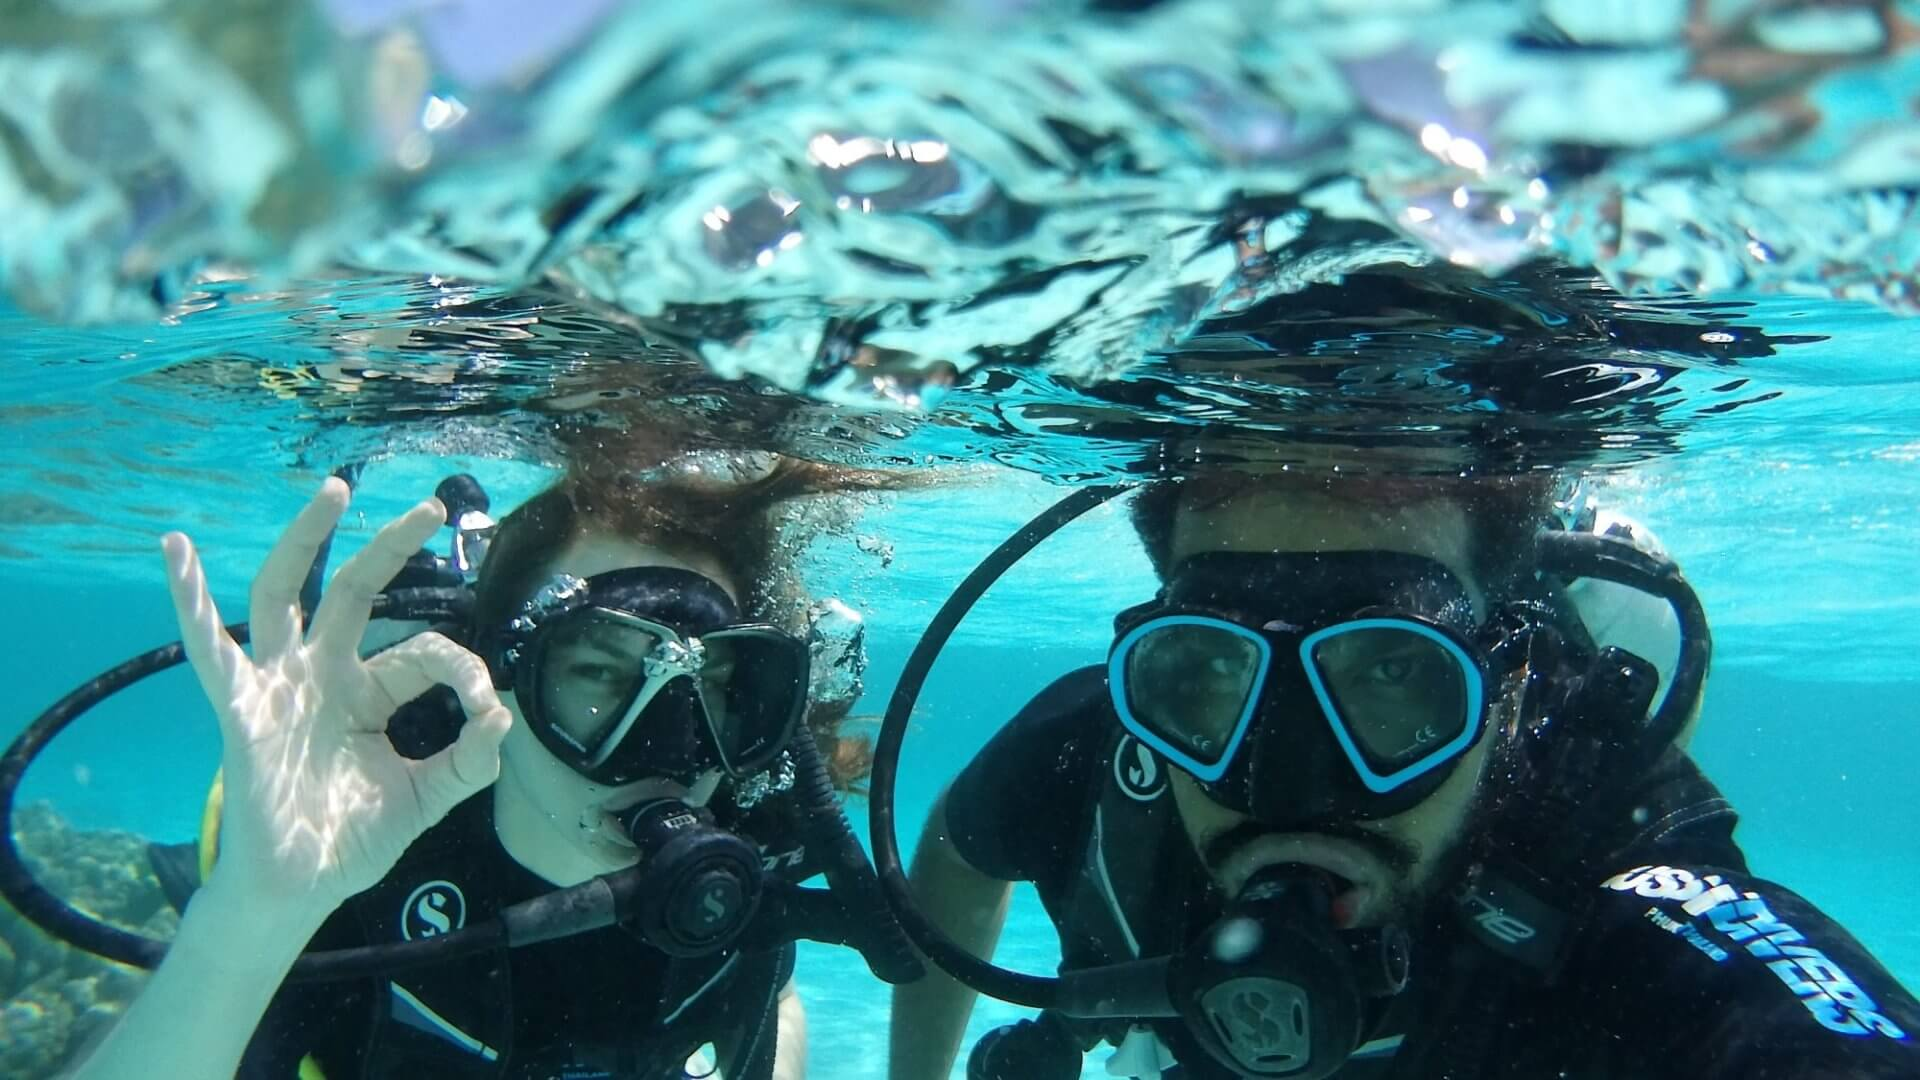 Reasons to get Scuba Diving Certified